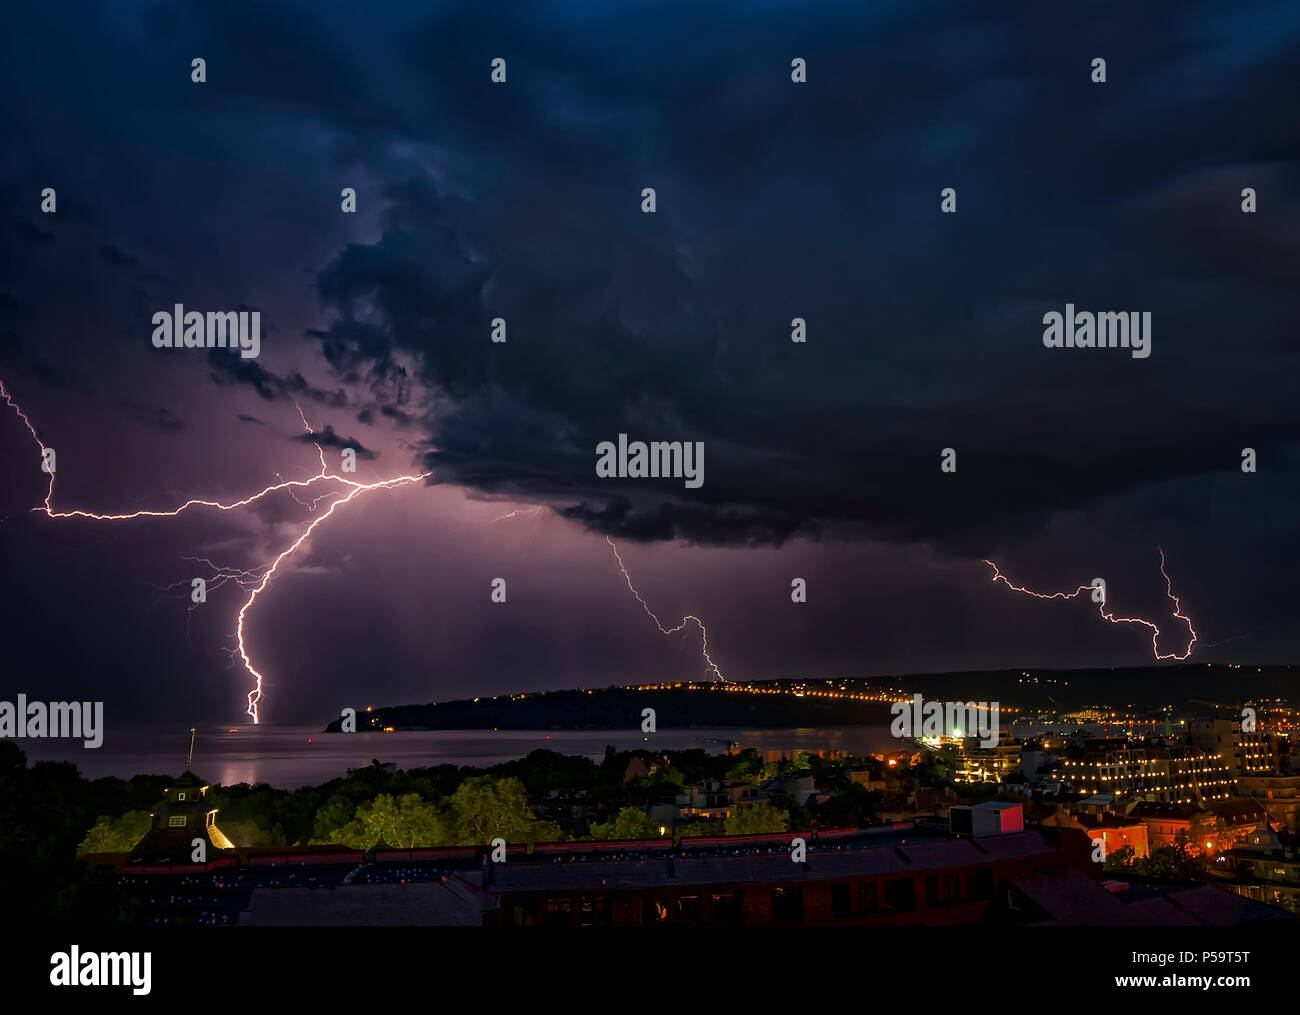 Stunning shots of thunder and clouds